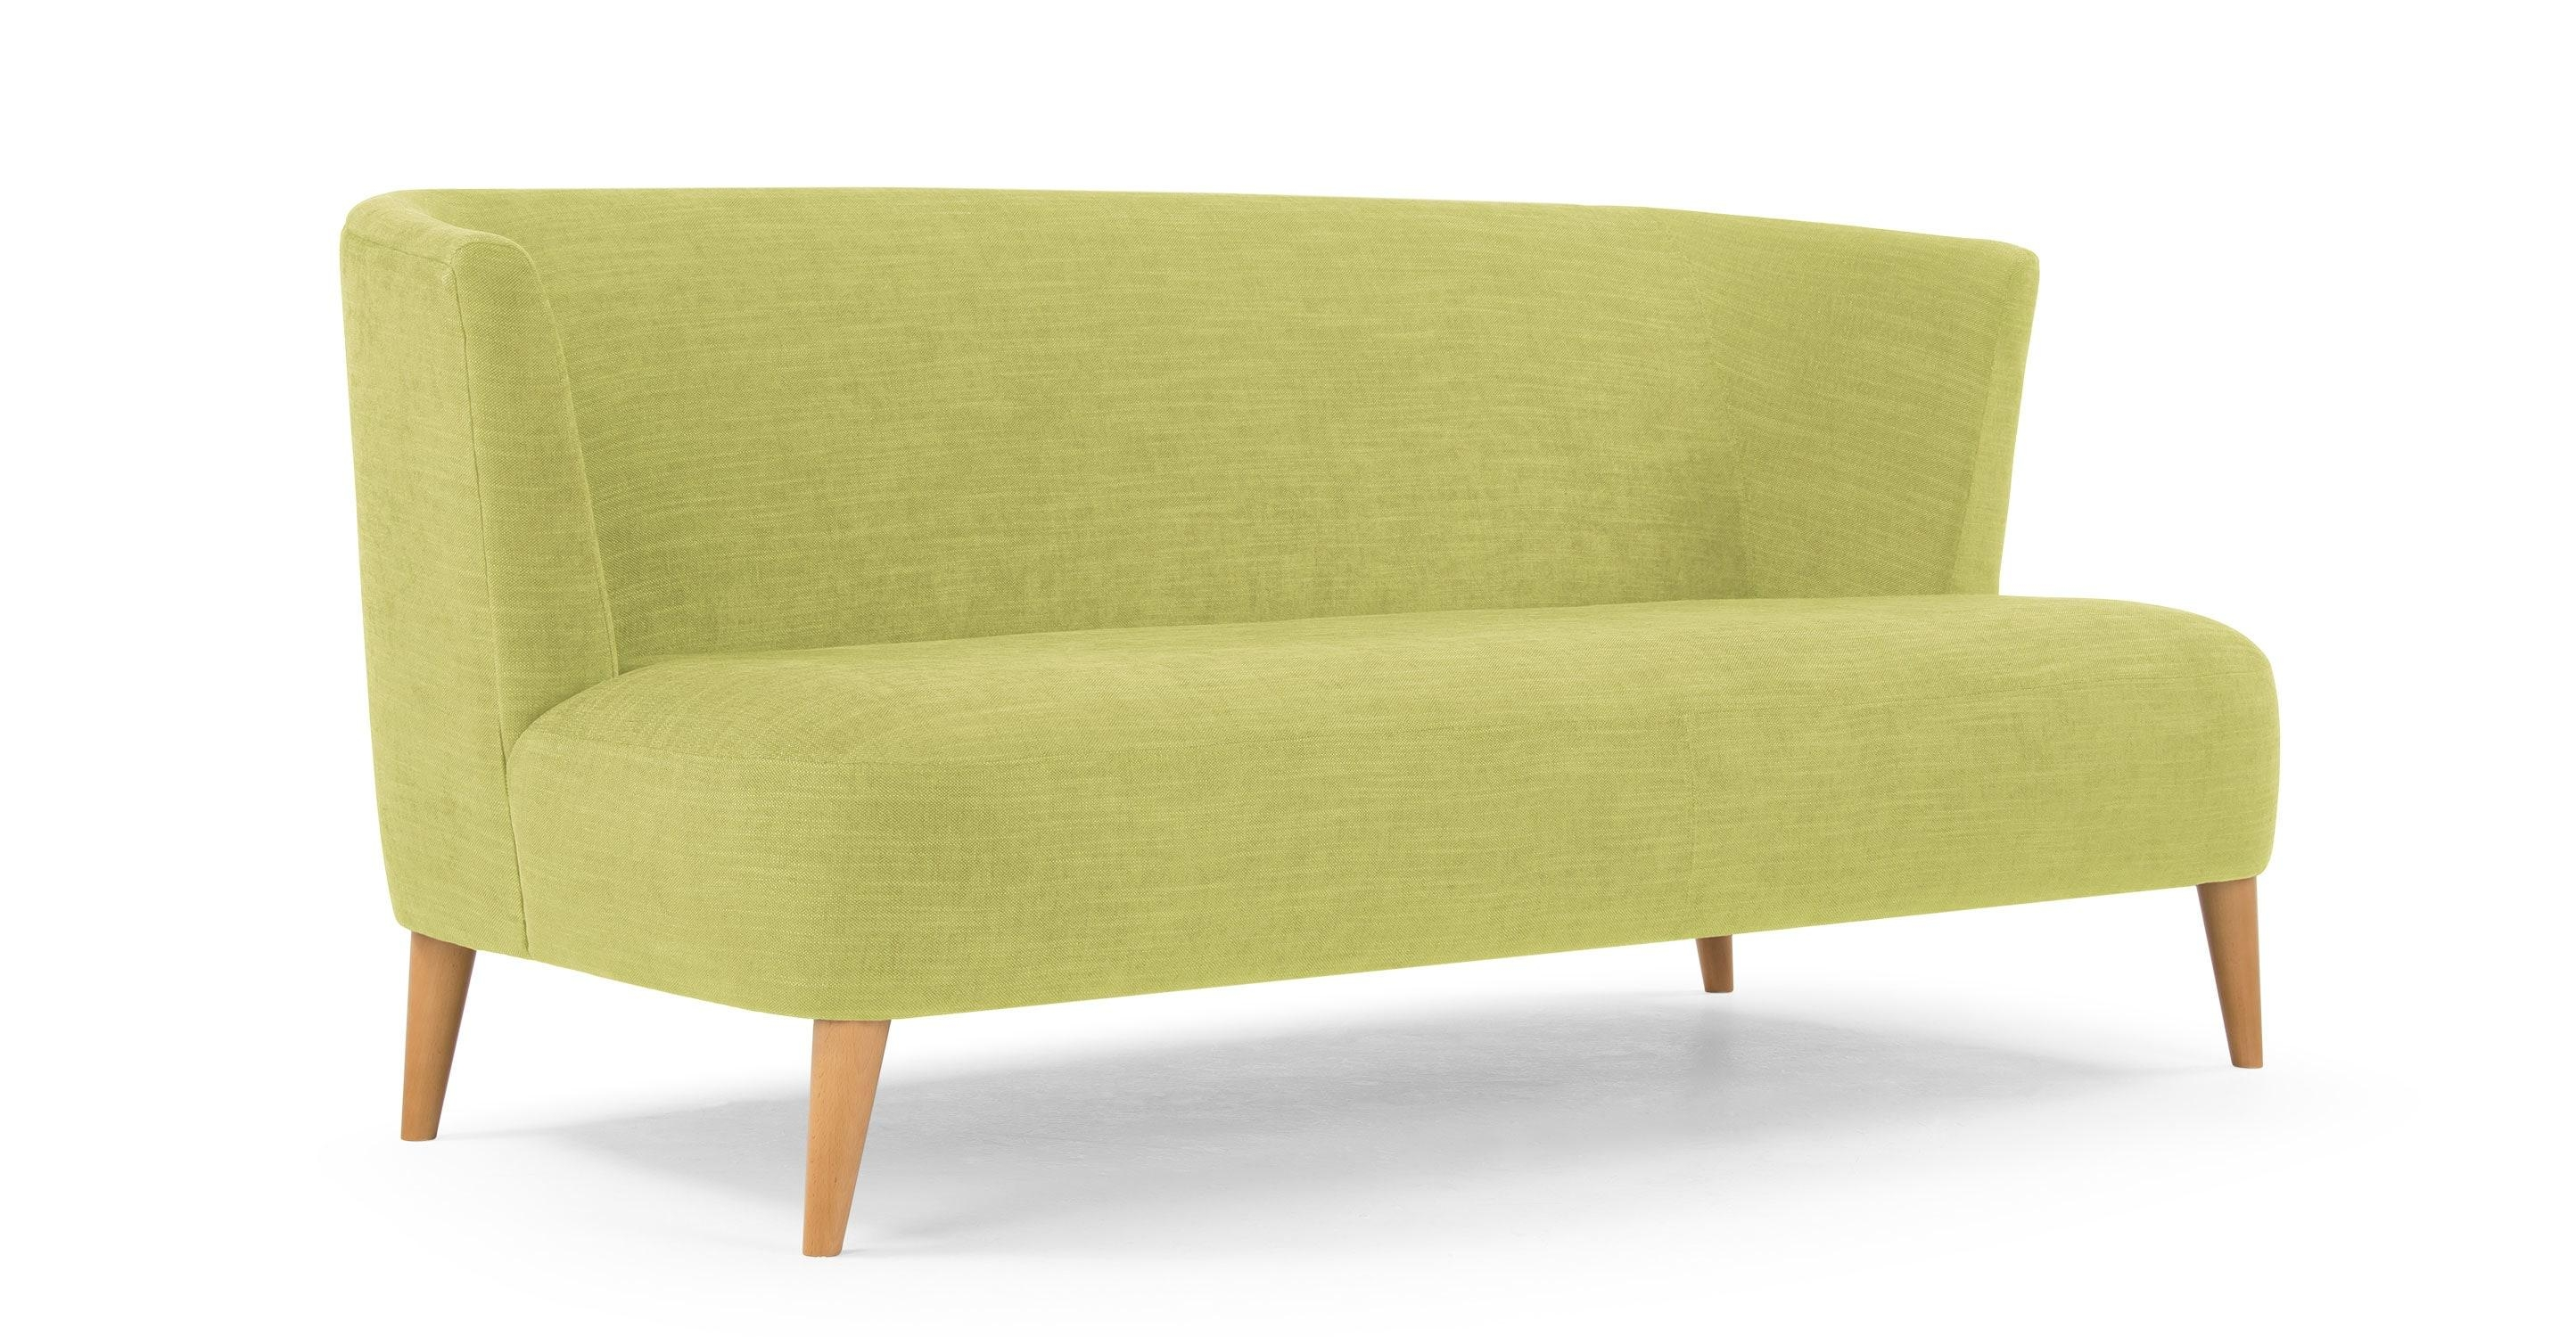 Chartreuse Sofa 27 With Chartreuse Sofa | Jinanhongyu With Regard To Chartreuse Sofas (Image 9 of 20)